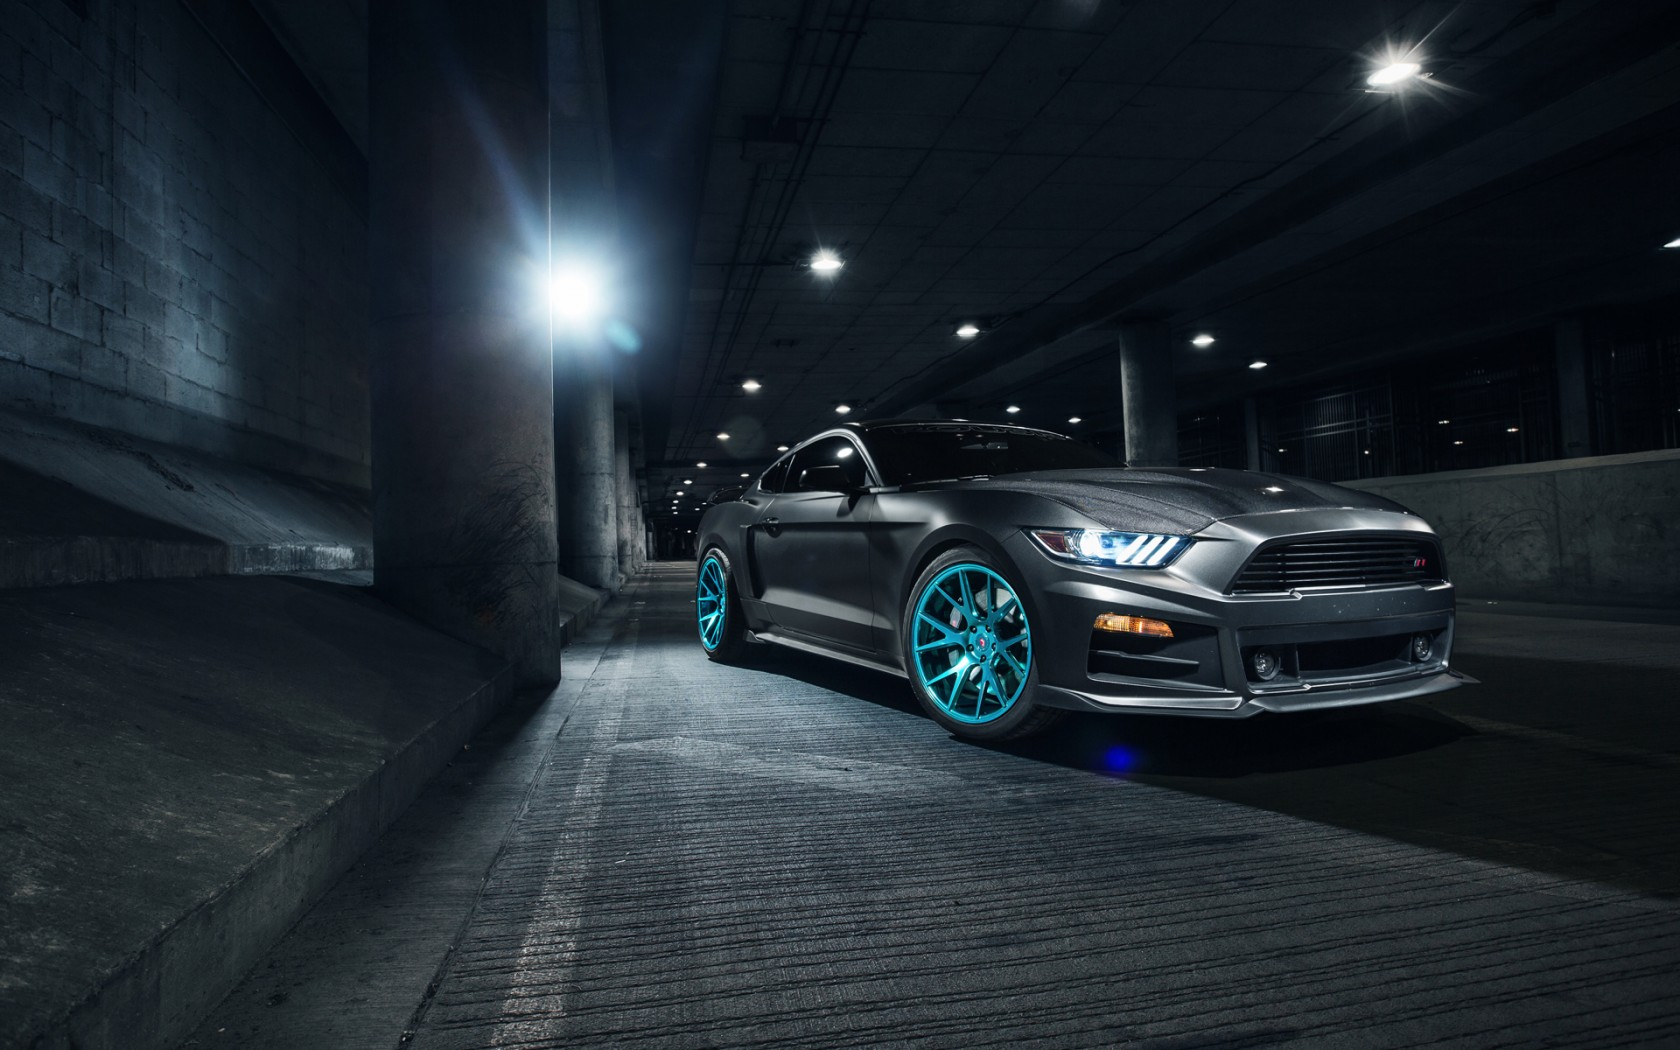 Cars Wallpapers 2014 Hd Download Roush Ford Mustang Vossen Wheels 2 Wallpaper Hd Car